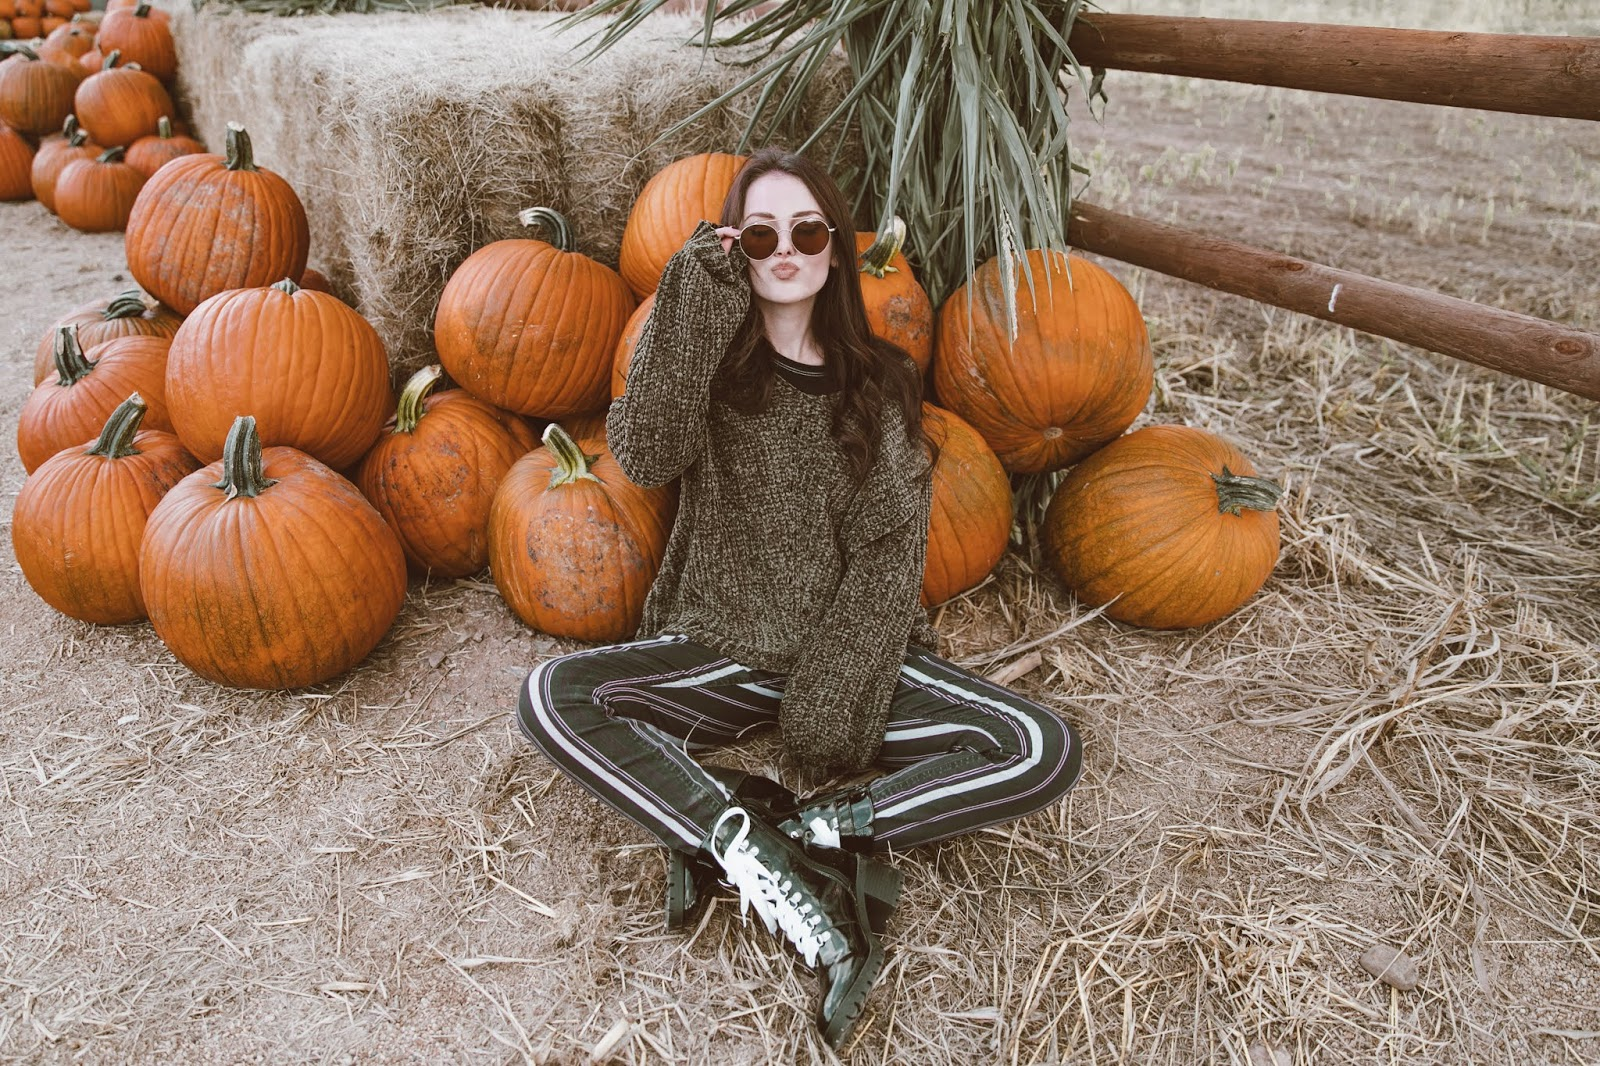 Shelly Stuckman, Mortimer Farms, Pumpkin Patch, Halloween, pumpkin fest, arizona girl, Charlotte russe, stripe pants, white laces, scary movies, halloween movies,